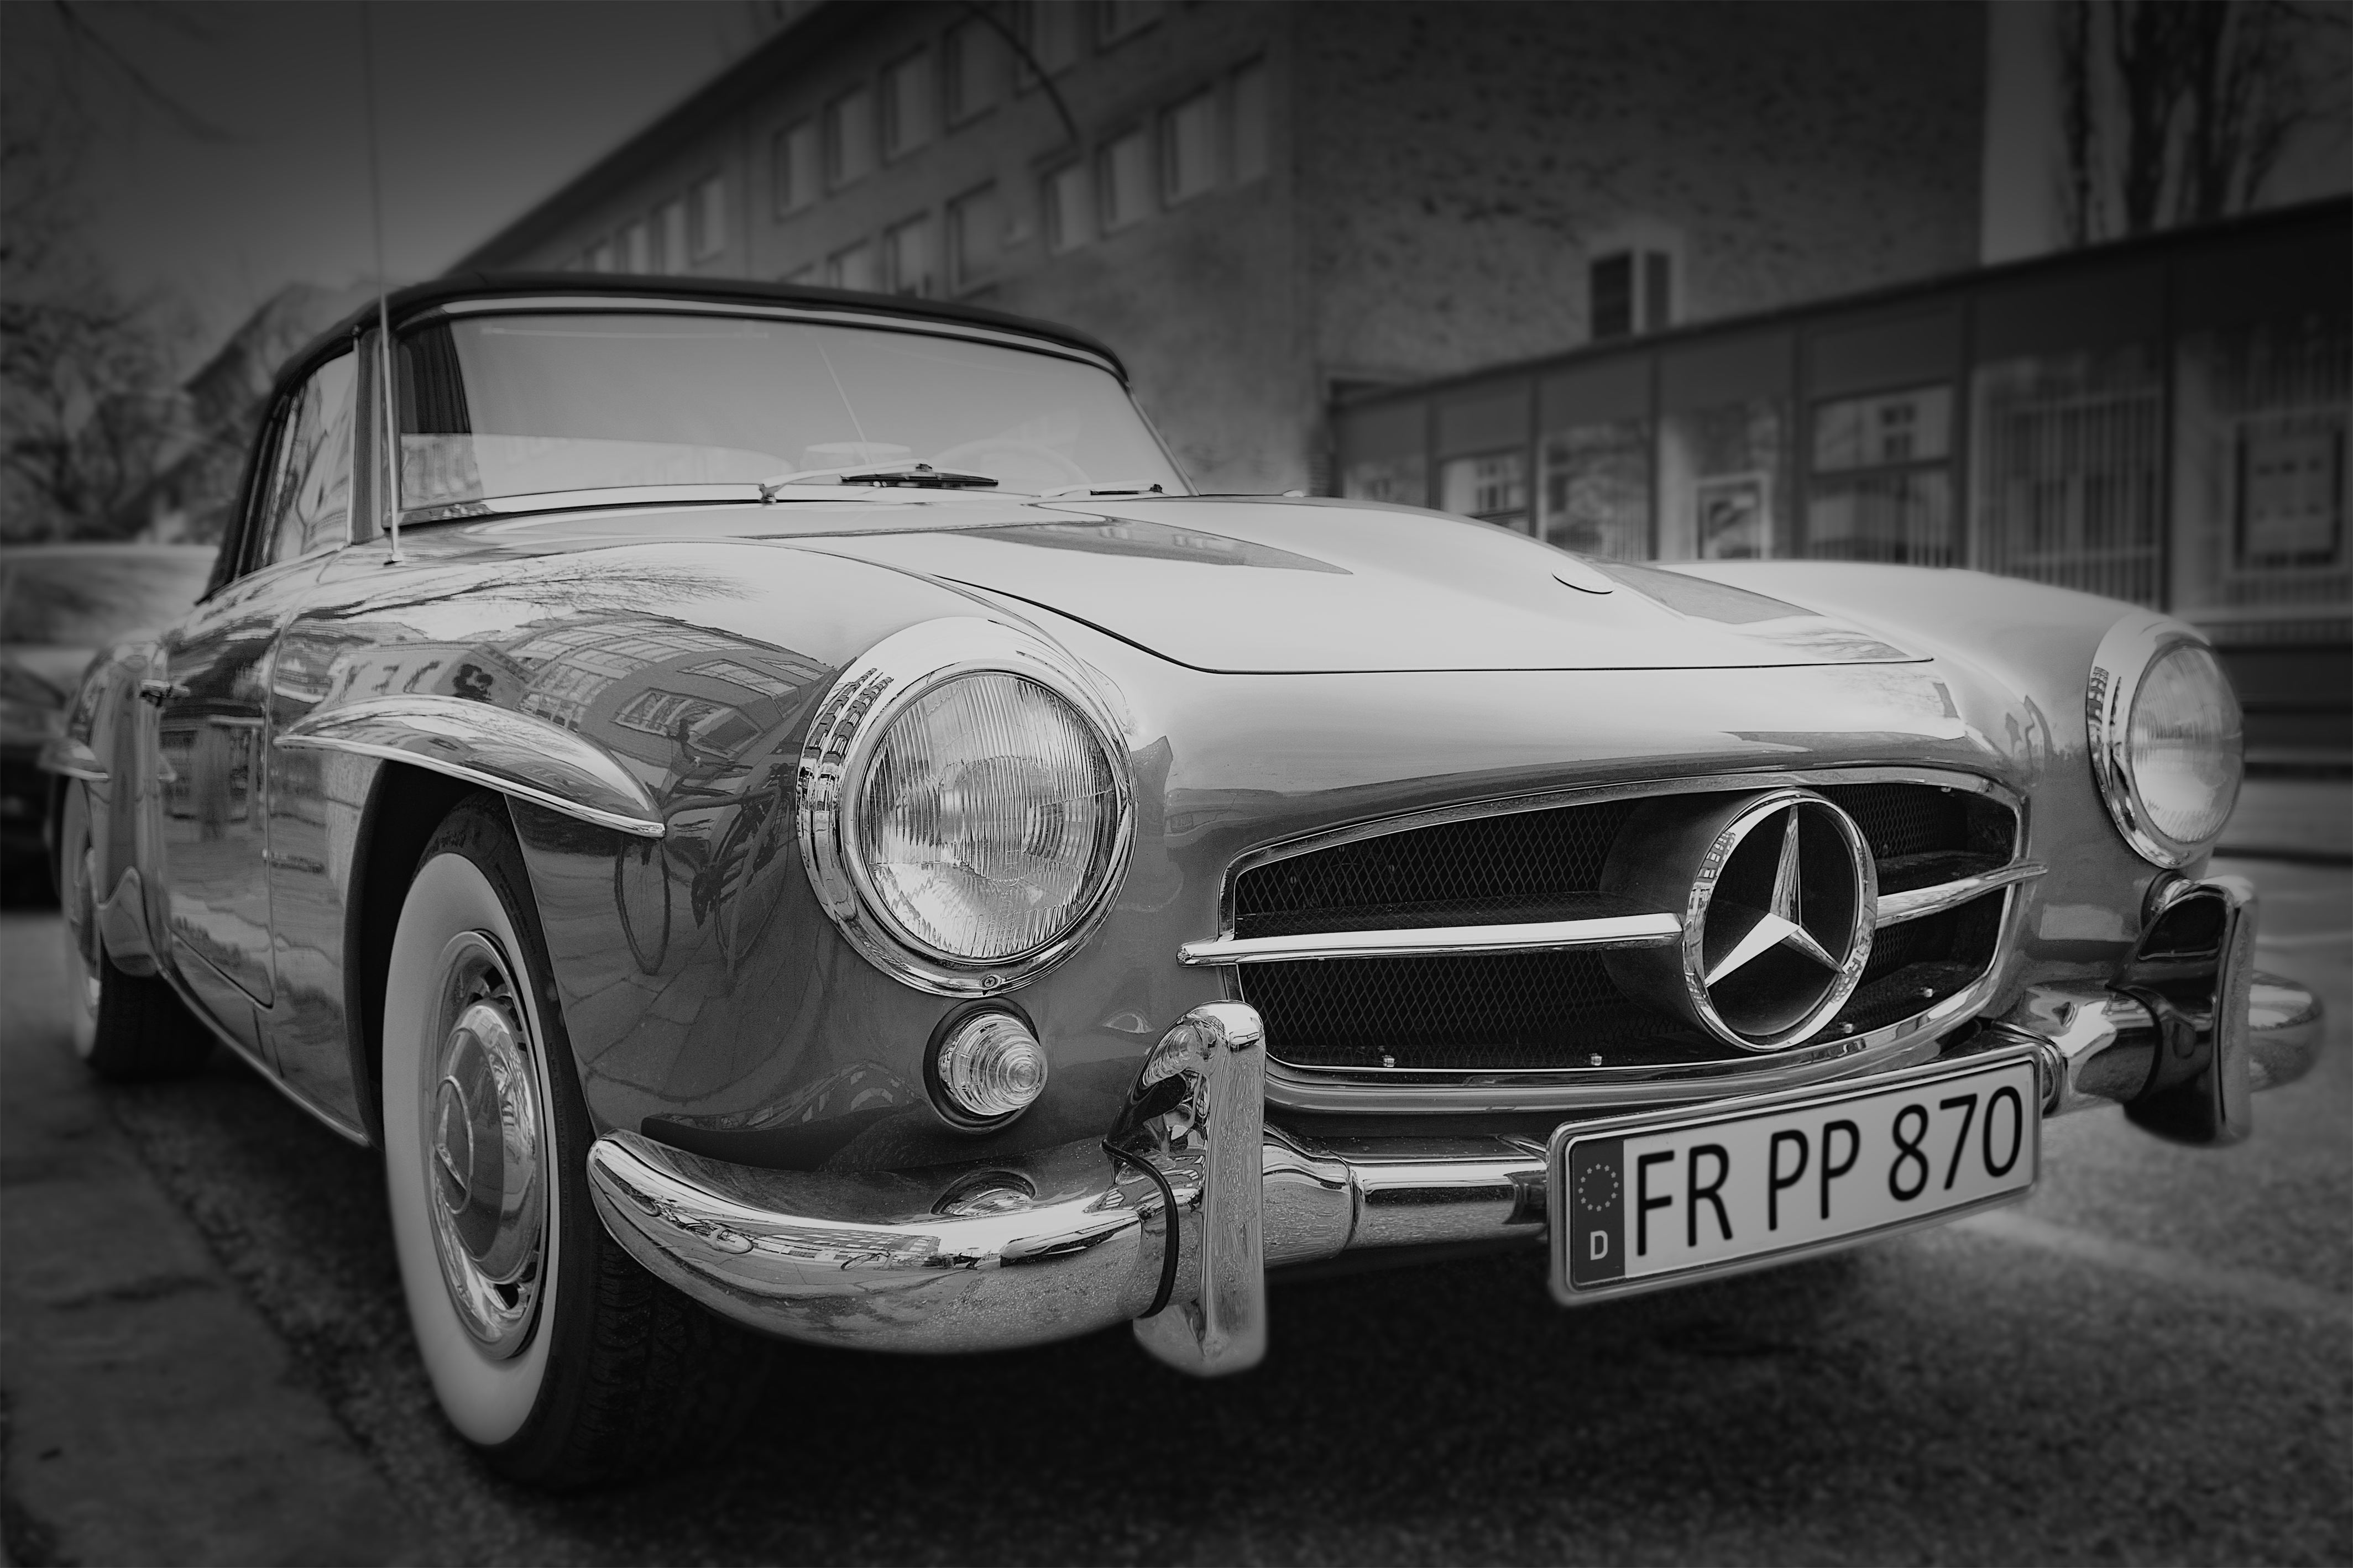 Grayscale Photography Of Classic Mercedes Benz Car Free Stock Photo